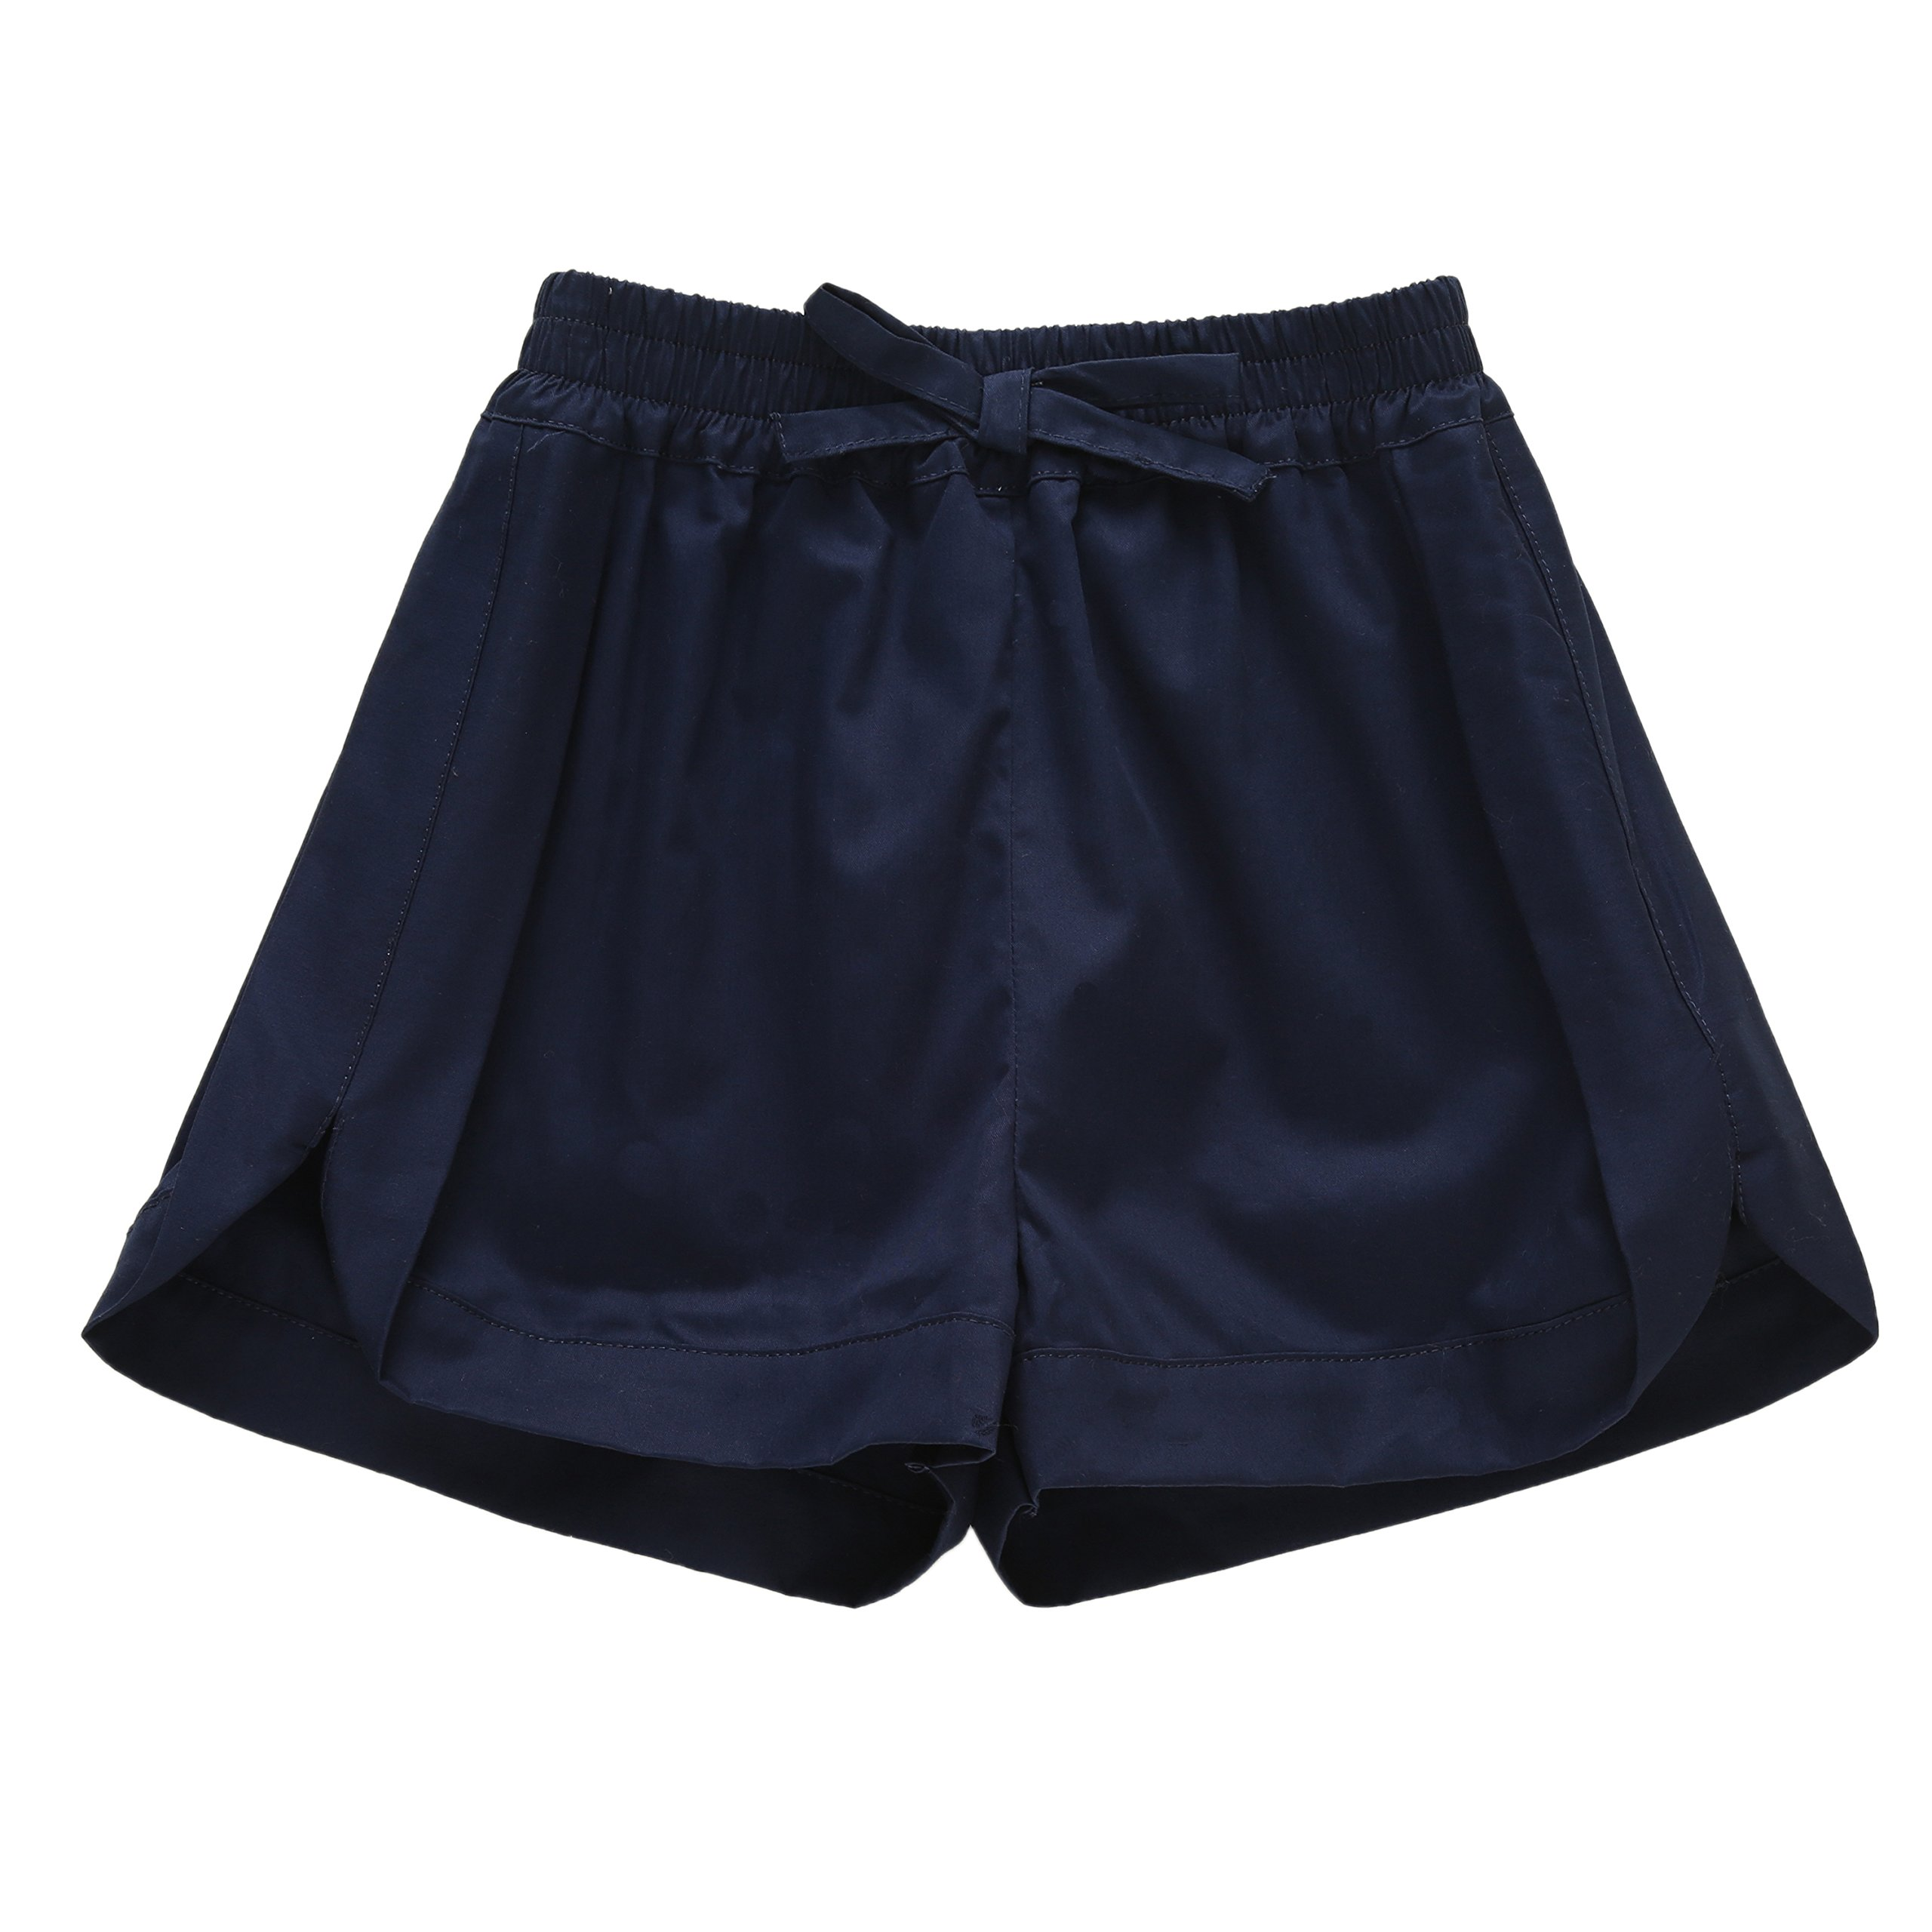 Richie House Big Girls' Summer Short Pants with Bow RH2288-A-12